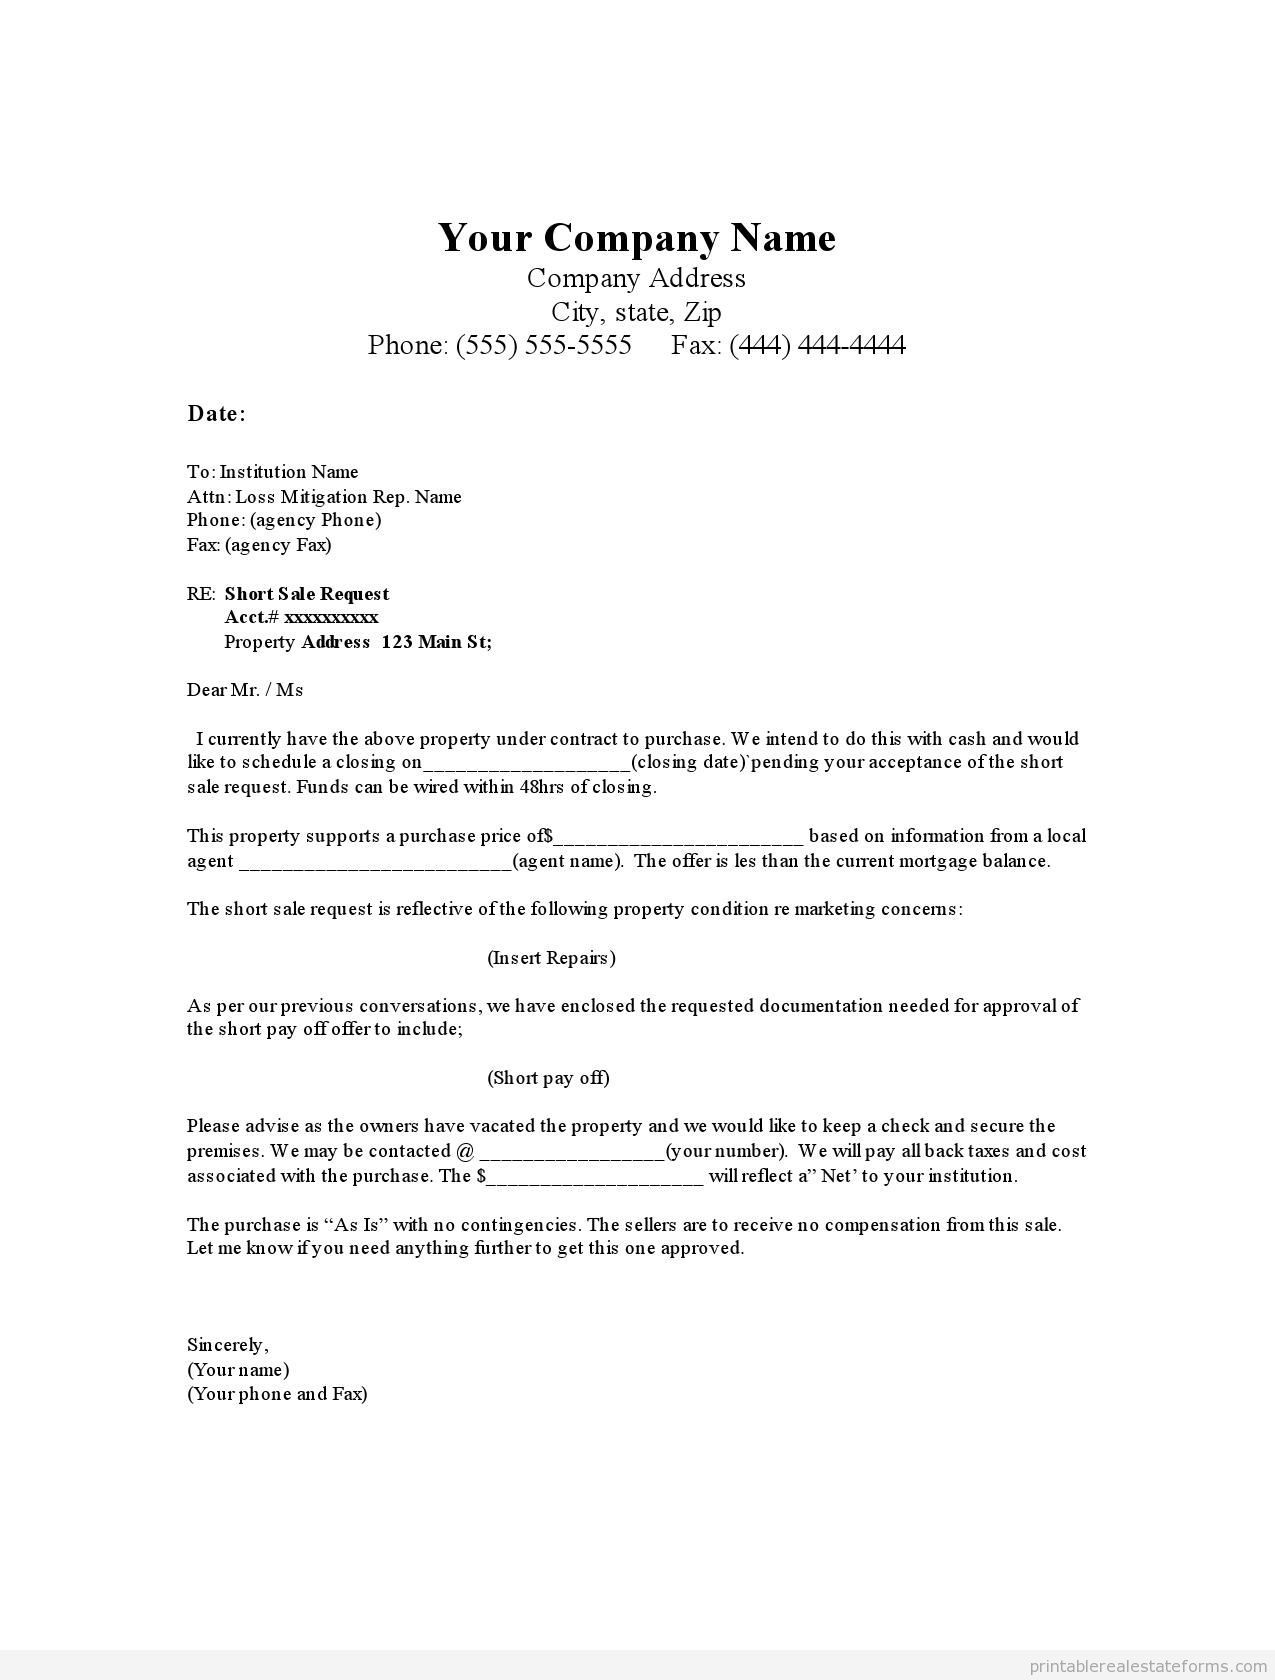 Printable Short Offer Letter Good Condition Template Sample - Real estate offer letter template